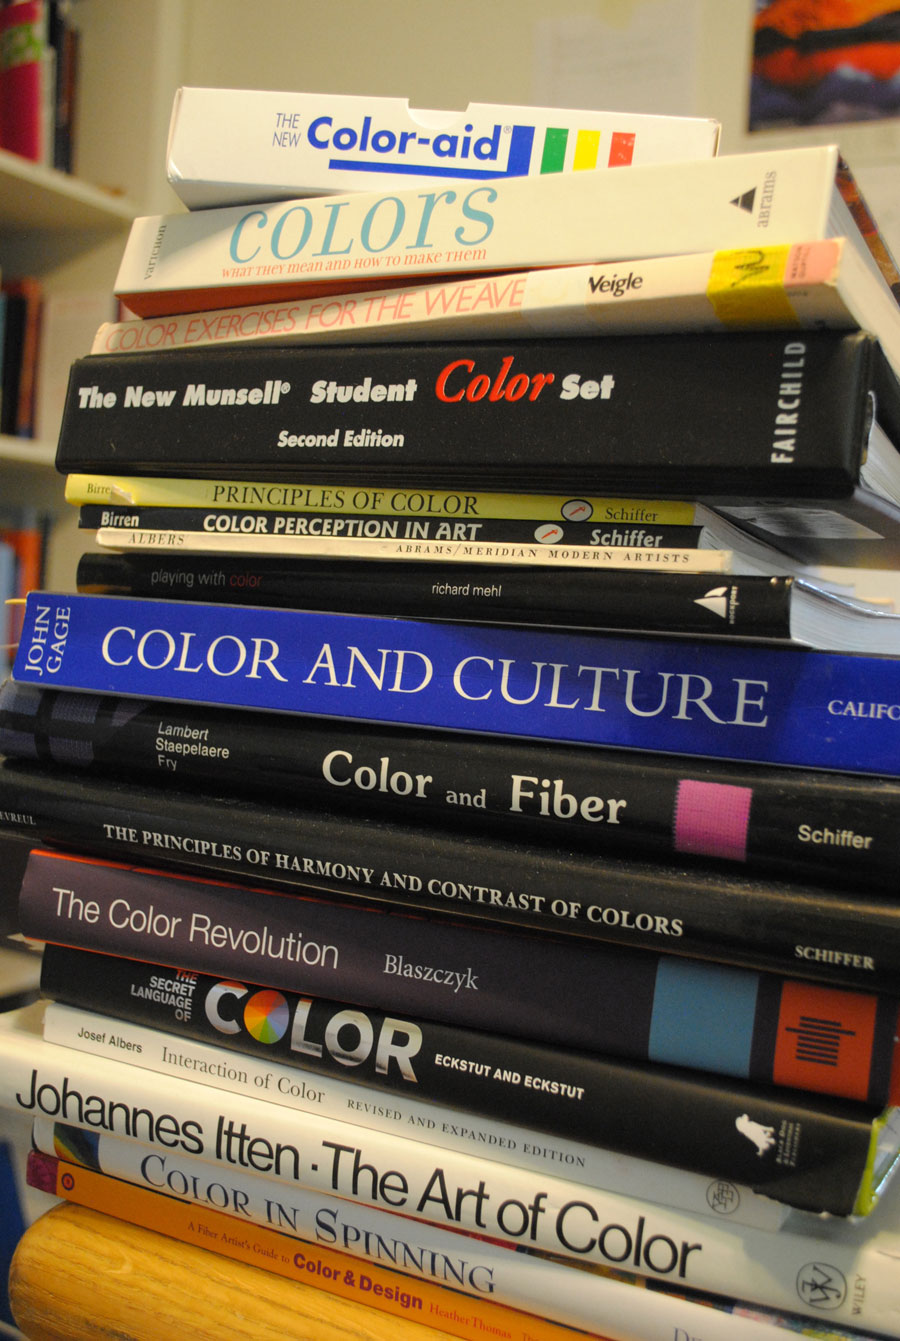 I Have One More Week Before The Next Workshops And Suspect Ill Use Most Of It Savoring These Books Learning About Color Though There Are